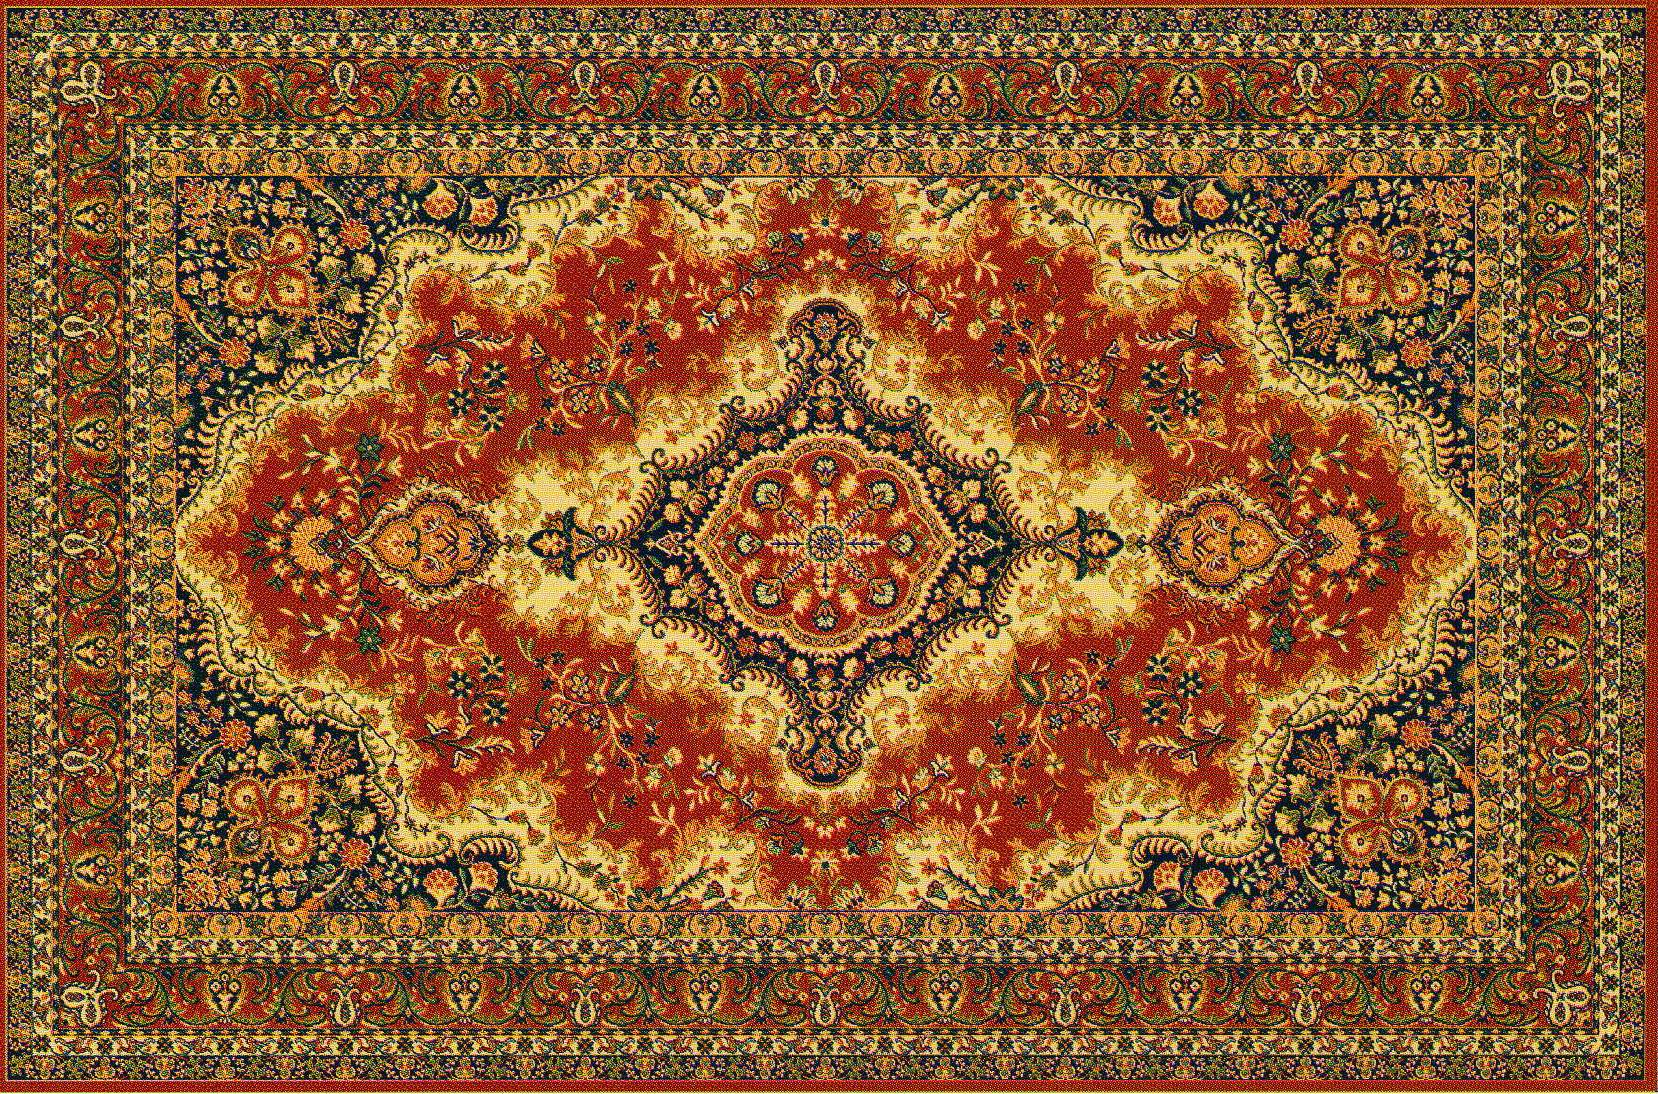 Tapijt Alaska Rugs On The Walls Russias Weird Obsession Weird Russia